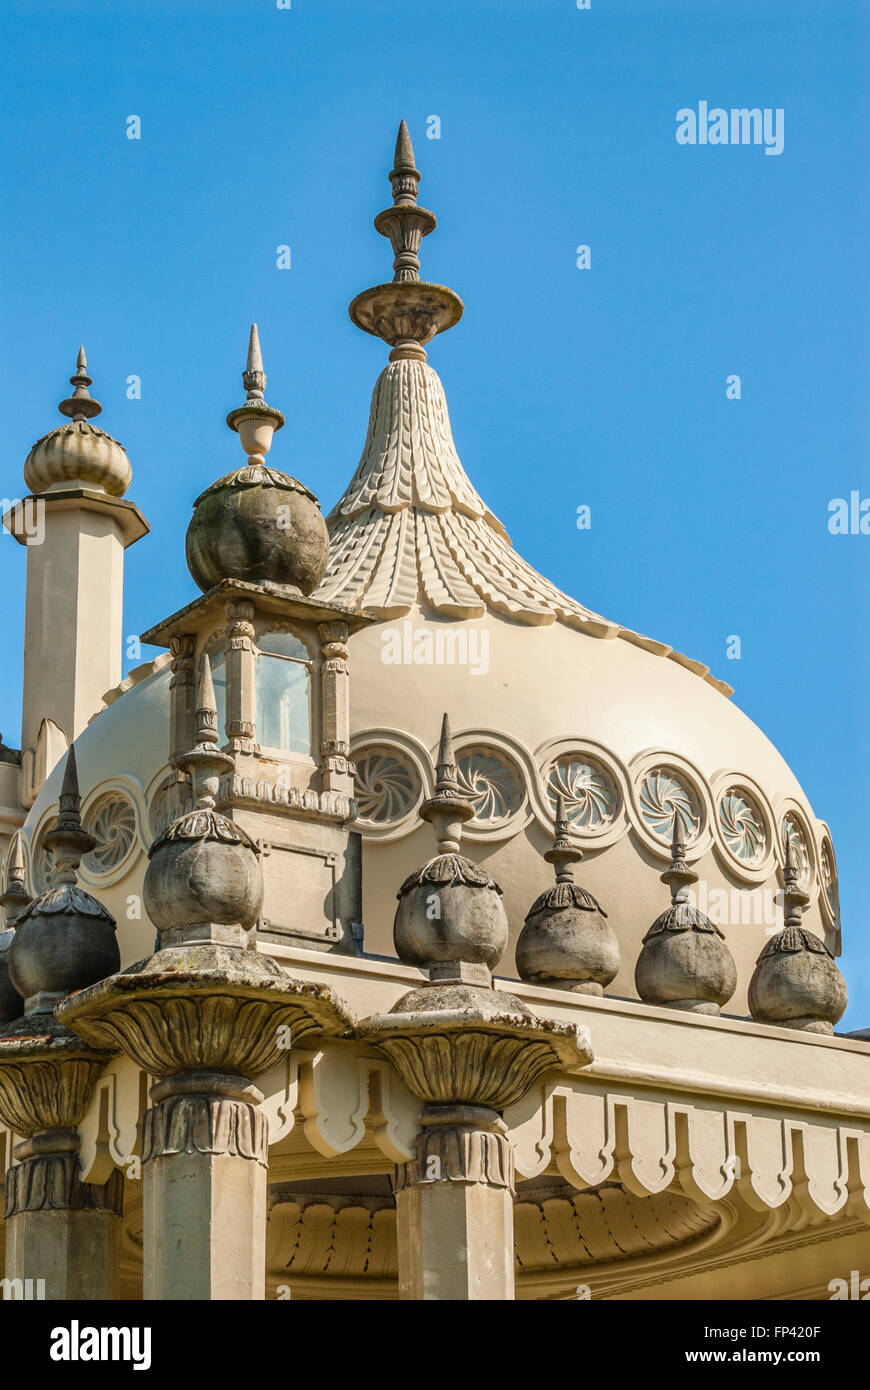 Detail of the Royal Pavilion of Brighton, East Sussex, England | Dachdetail des Royal Pavillion, Brighton, England, - Stock Image